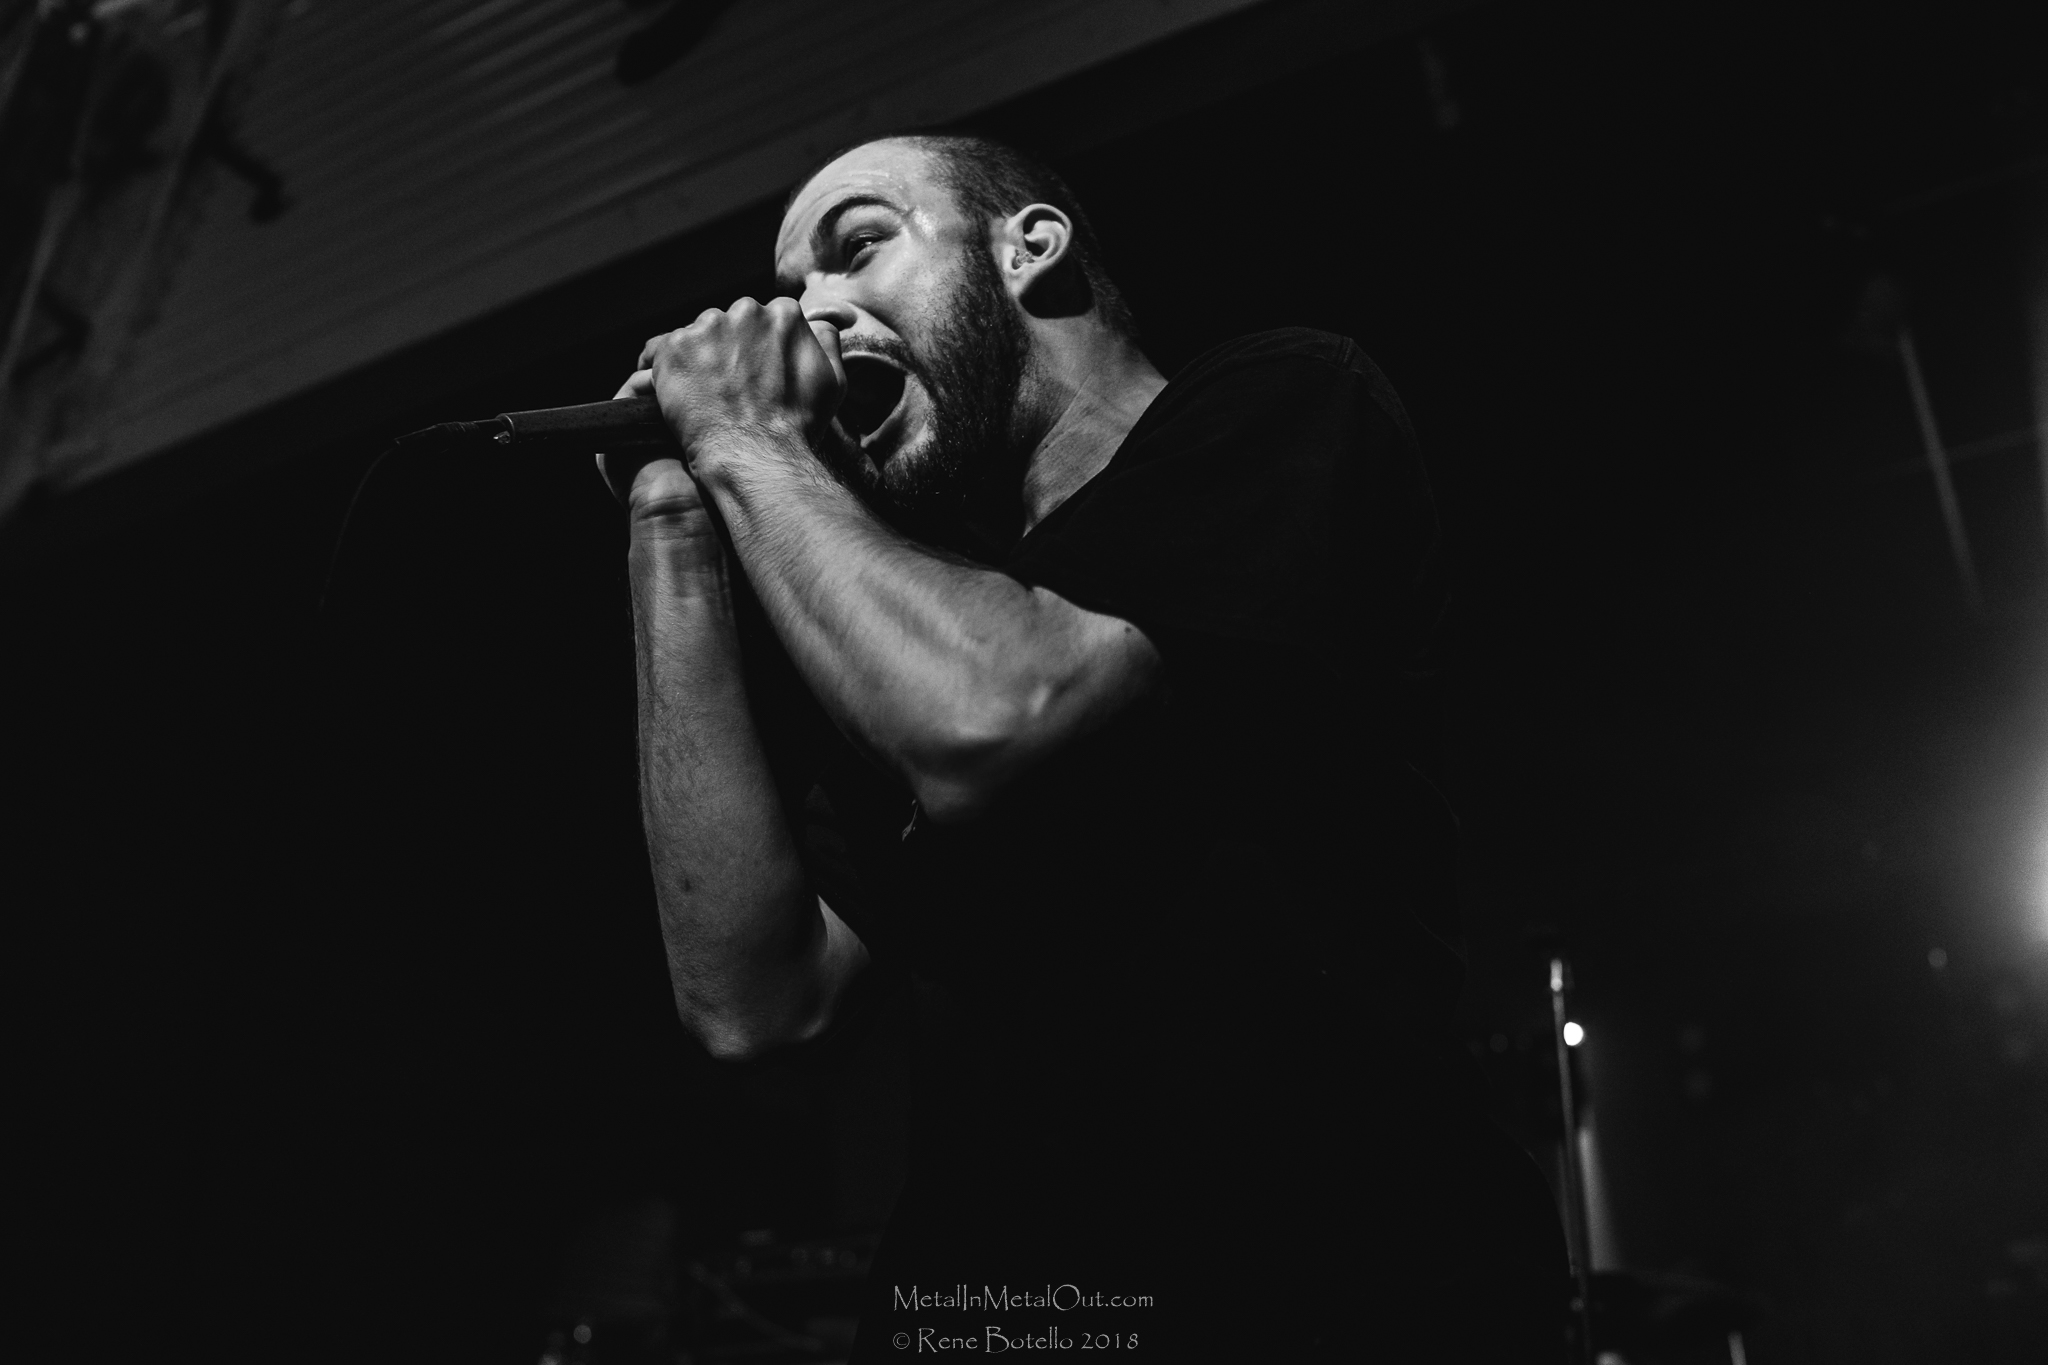 At the time, vocalist Bryan Garris was unable to make the show due to a family emergency, which we wish them well, the band continued on in full force with Isaac Hale taking on some vocal duties as well as members from Beartooth stepping up to the plate.  As they have said before, they will never miss a show.  Gotta give them props.  Not only did they make they show, they completely dominated the set.  Song after pummeling song, the most pit became of tornado of body parts whirling about.  At one point even a 50 gallon trash can made an appearance in the pit to some poor unfortunate faces! It's been a while since I've seen such madness with tooth grinning smiles circling about.